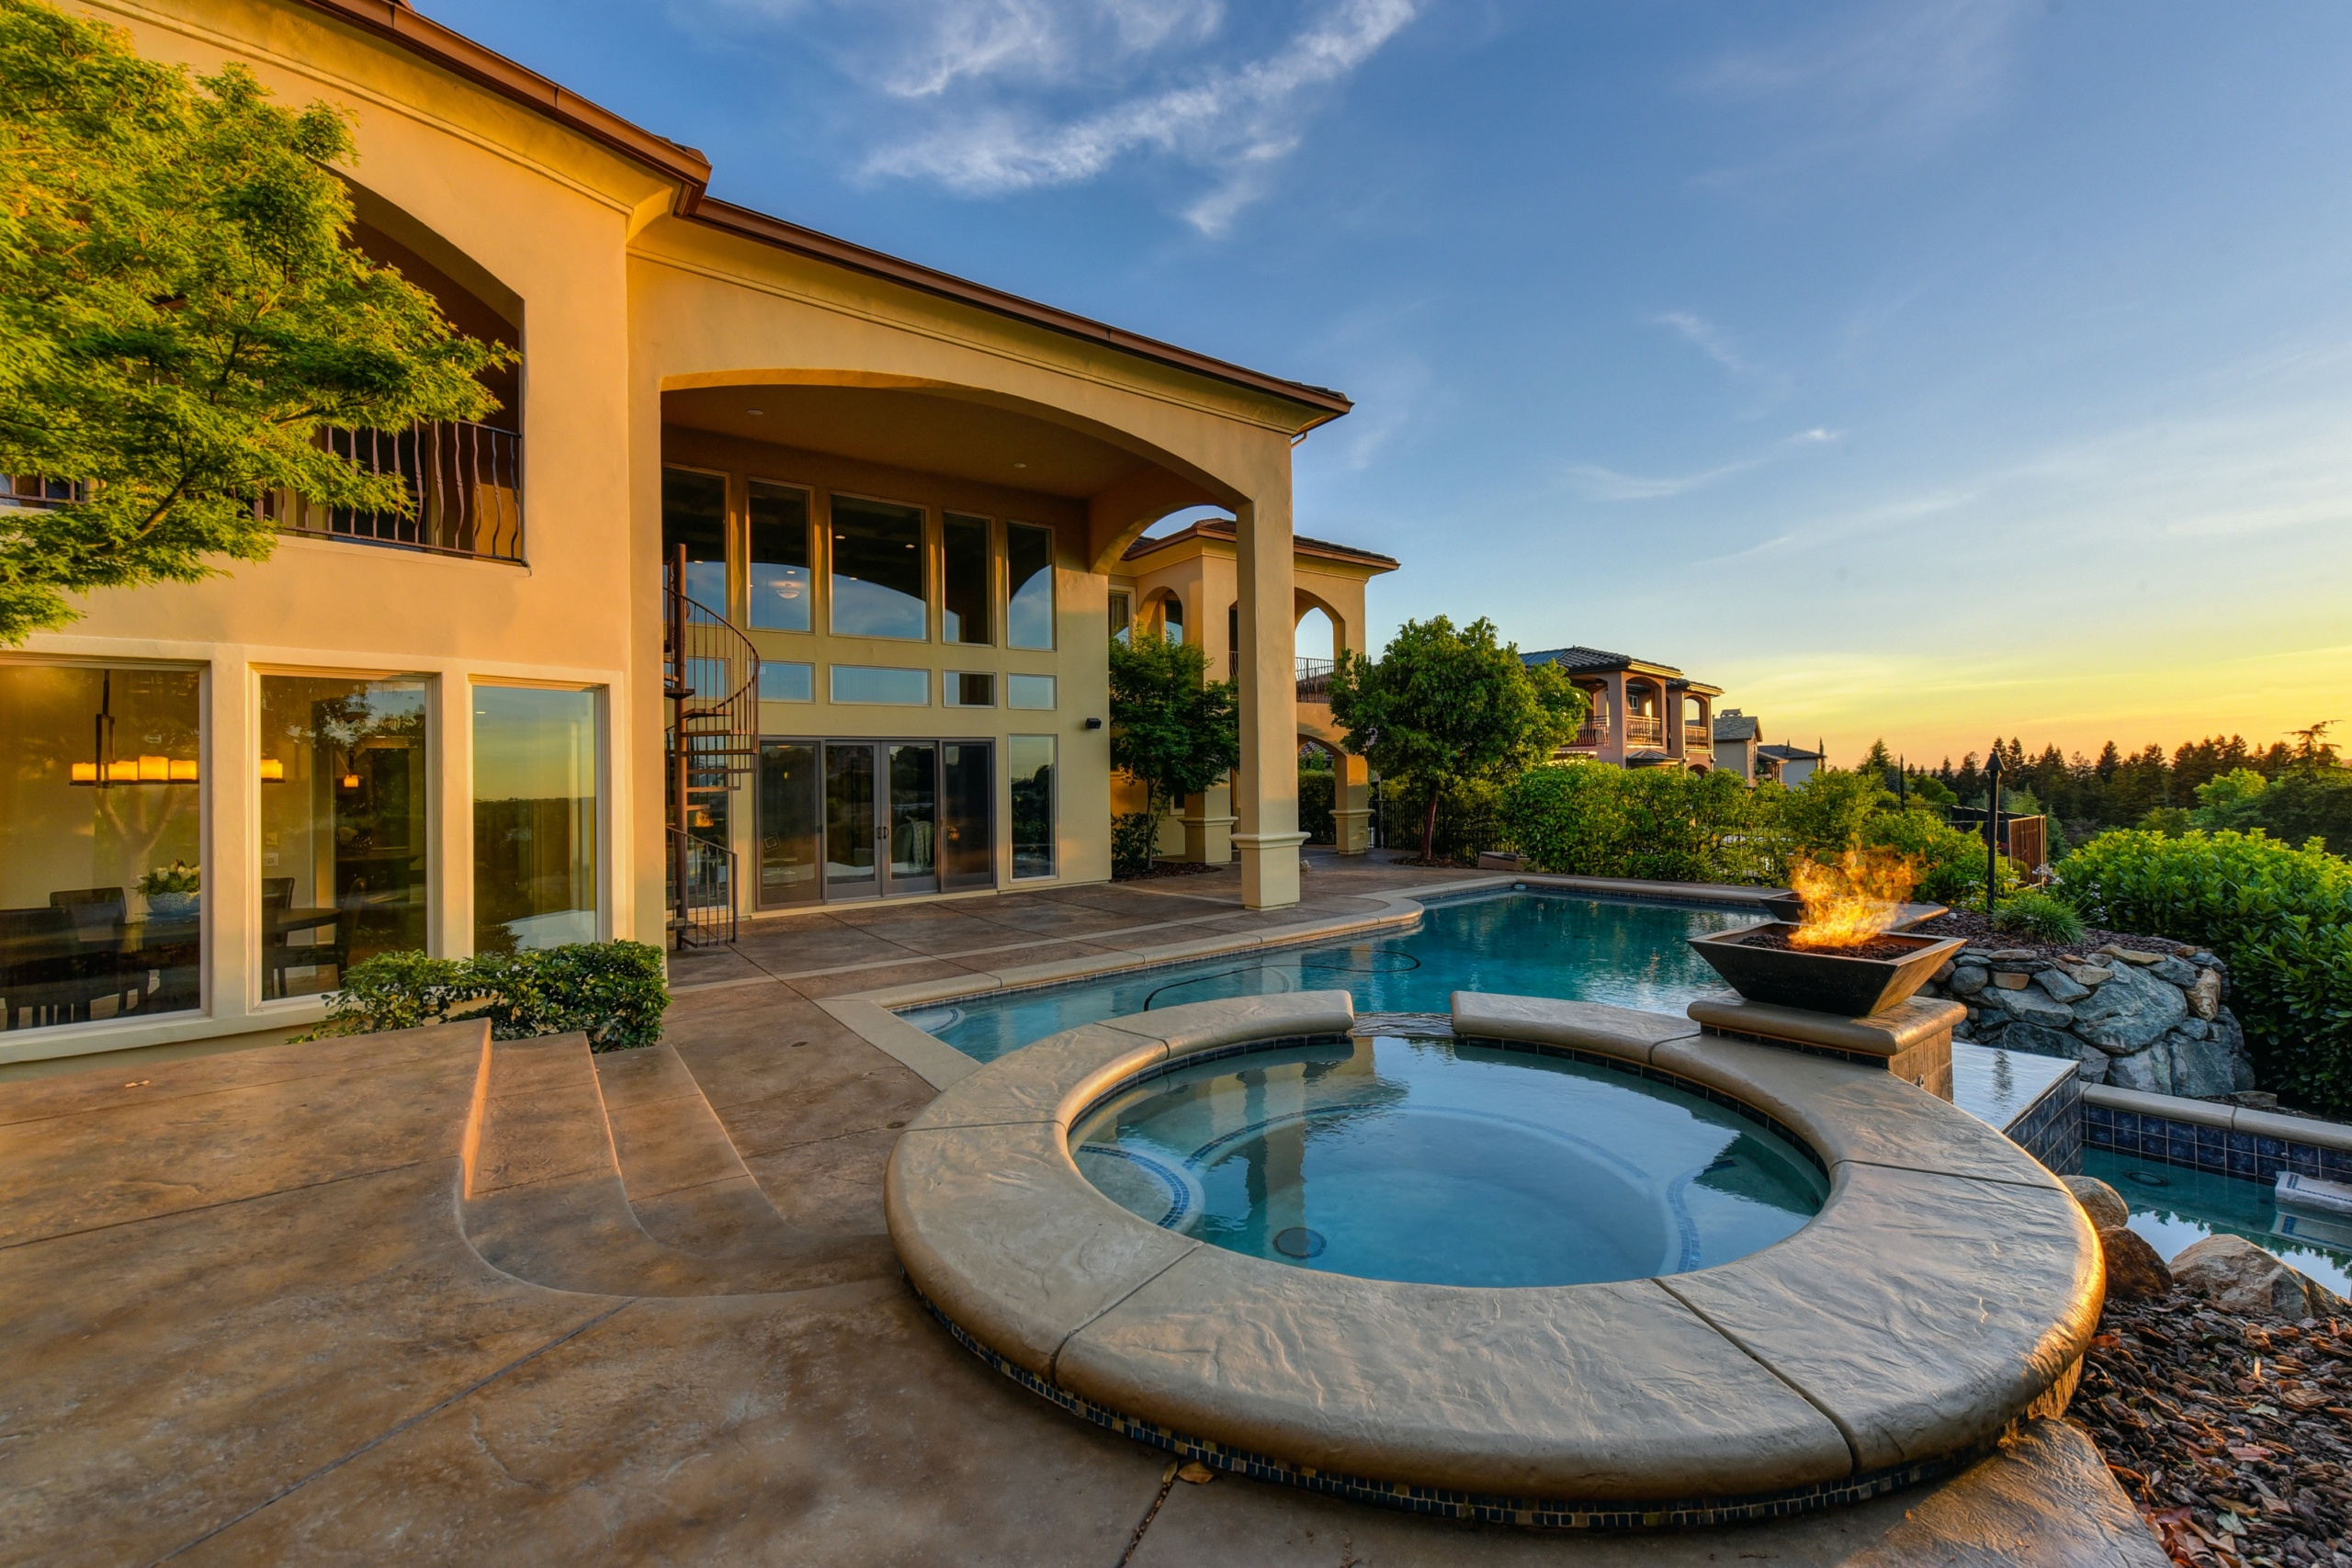 Luxury Real Estate Investments: Here's What To Consider